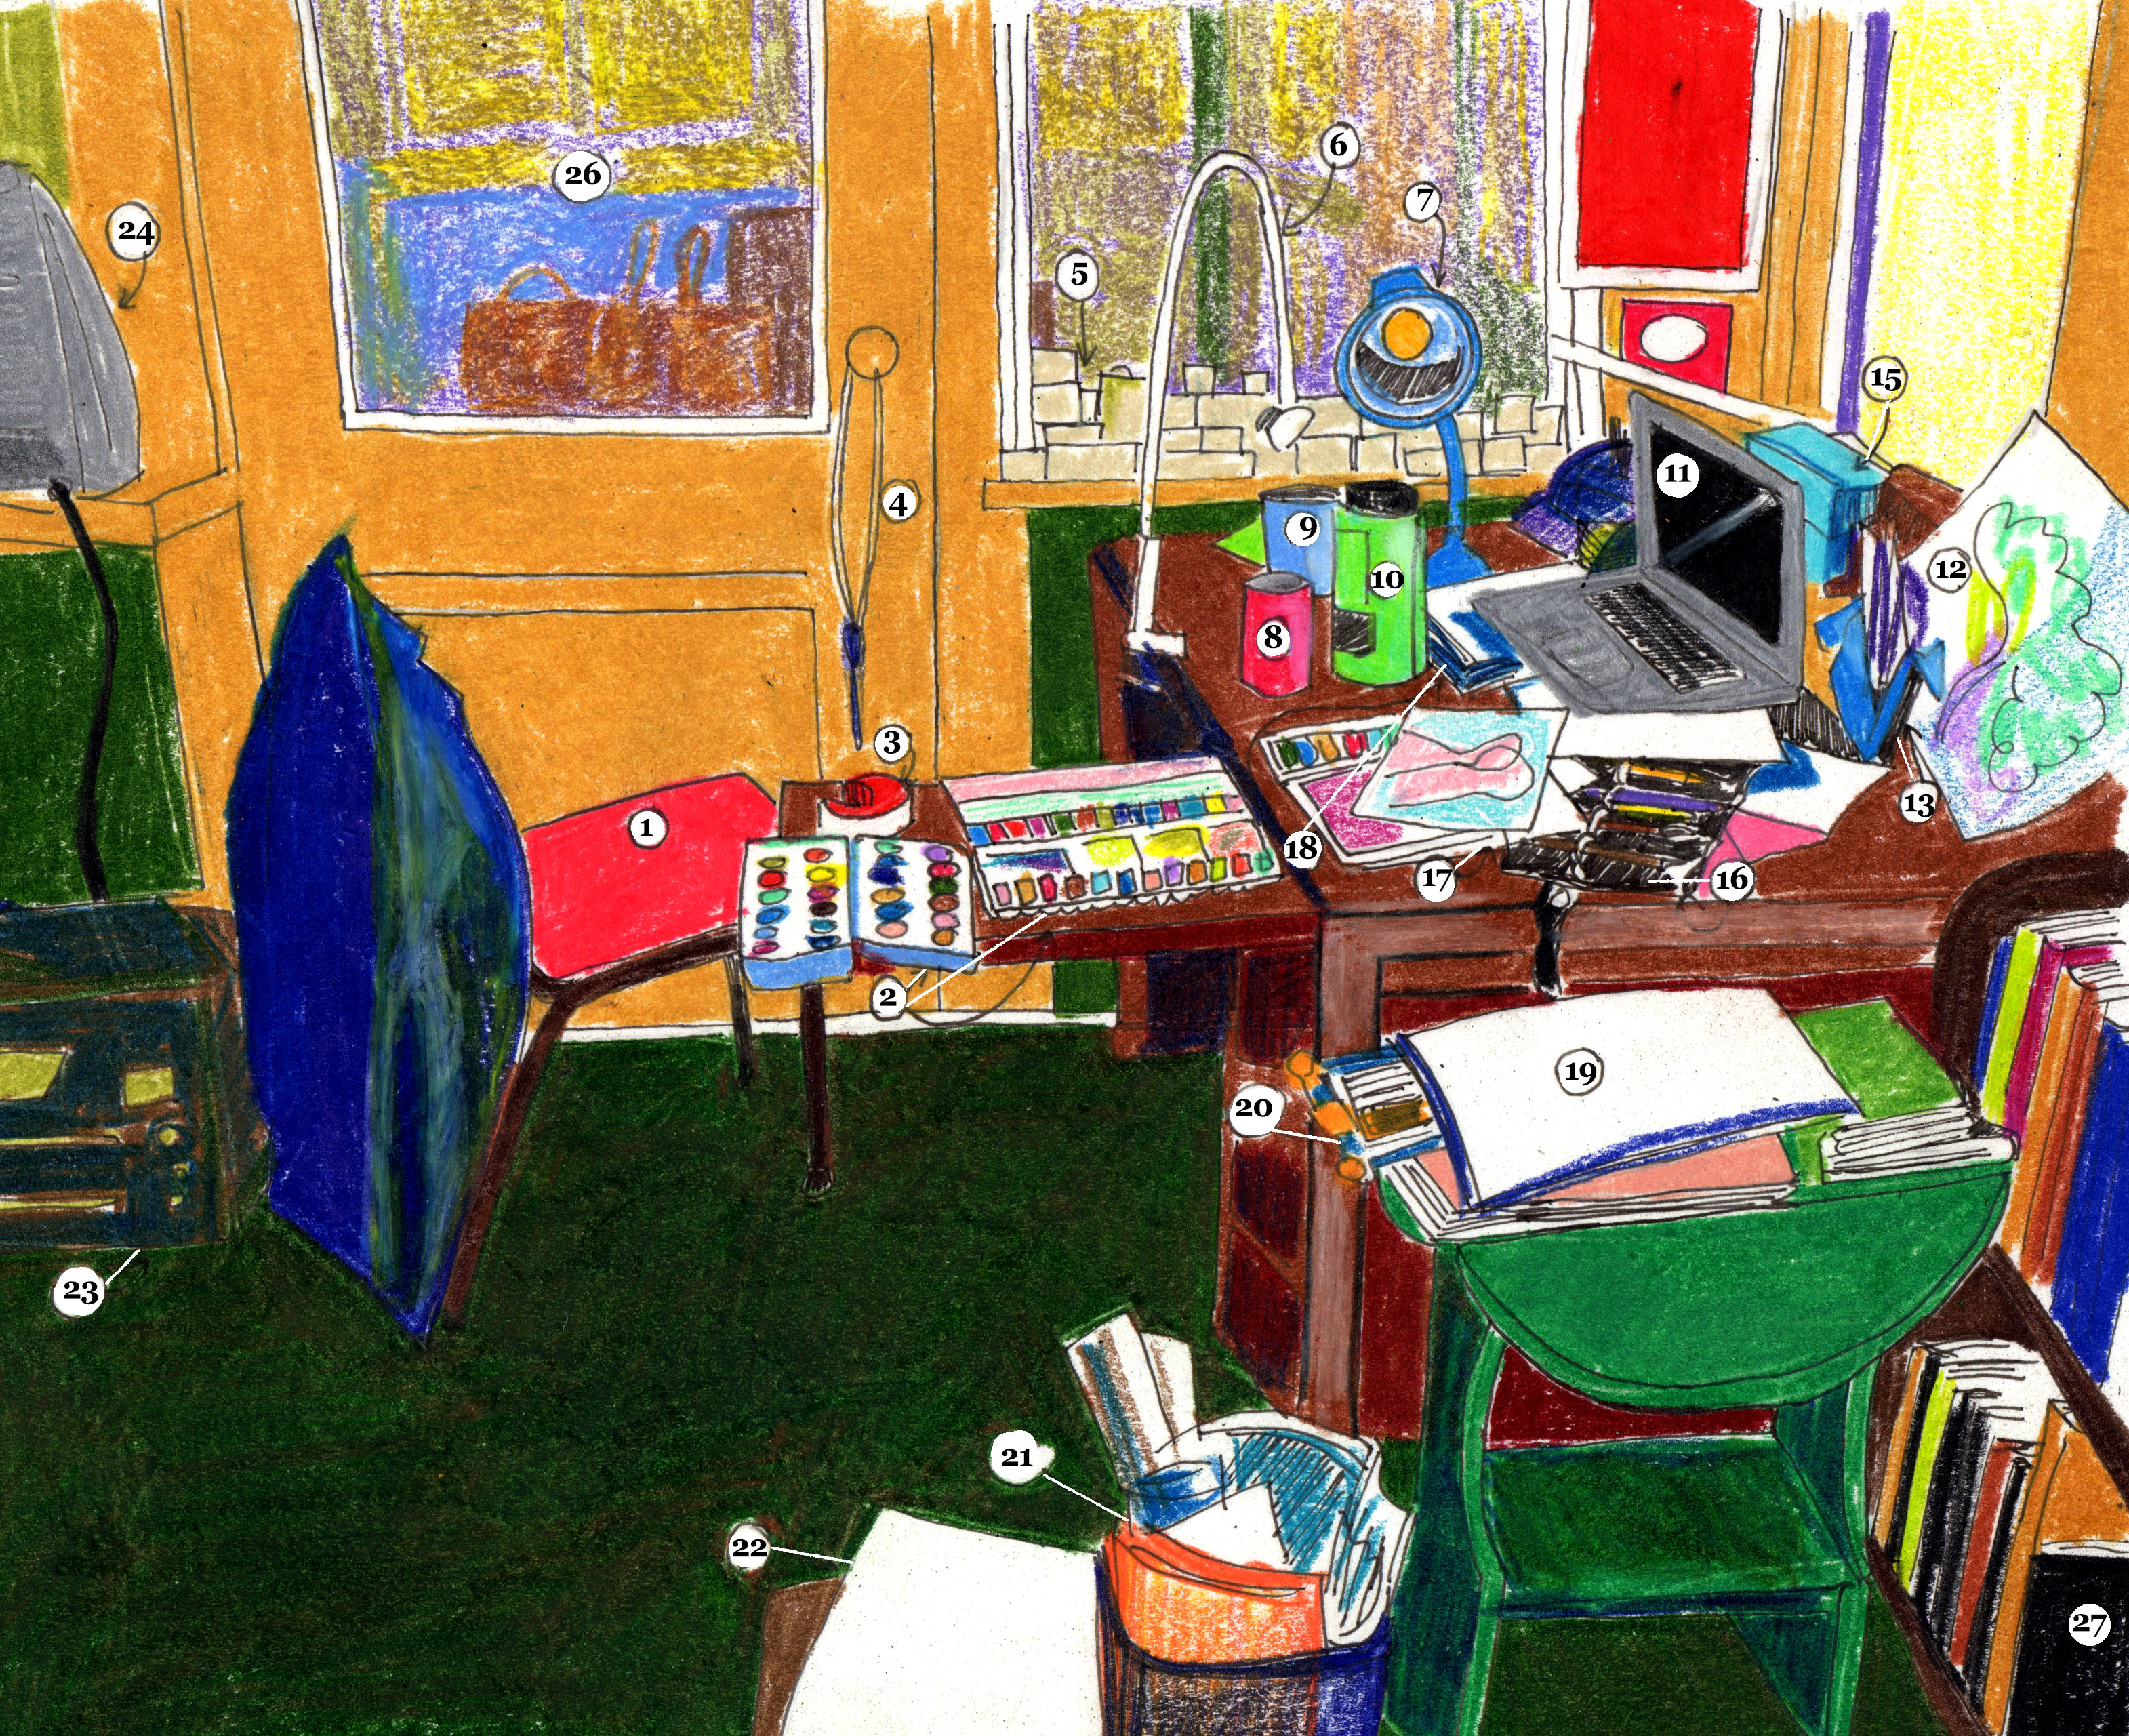 An illustration of Sophie Lucido Johnson's workspace with numerical labels.